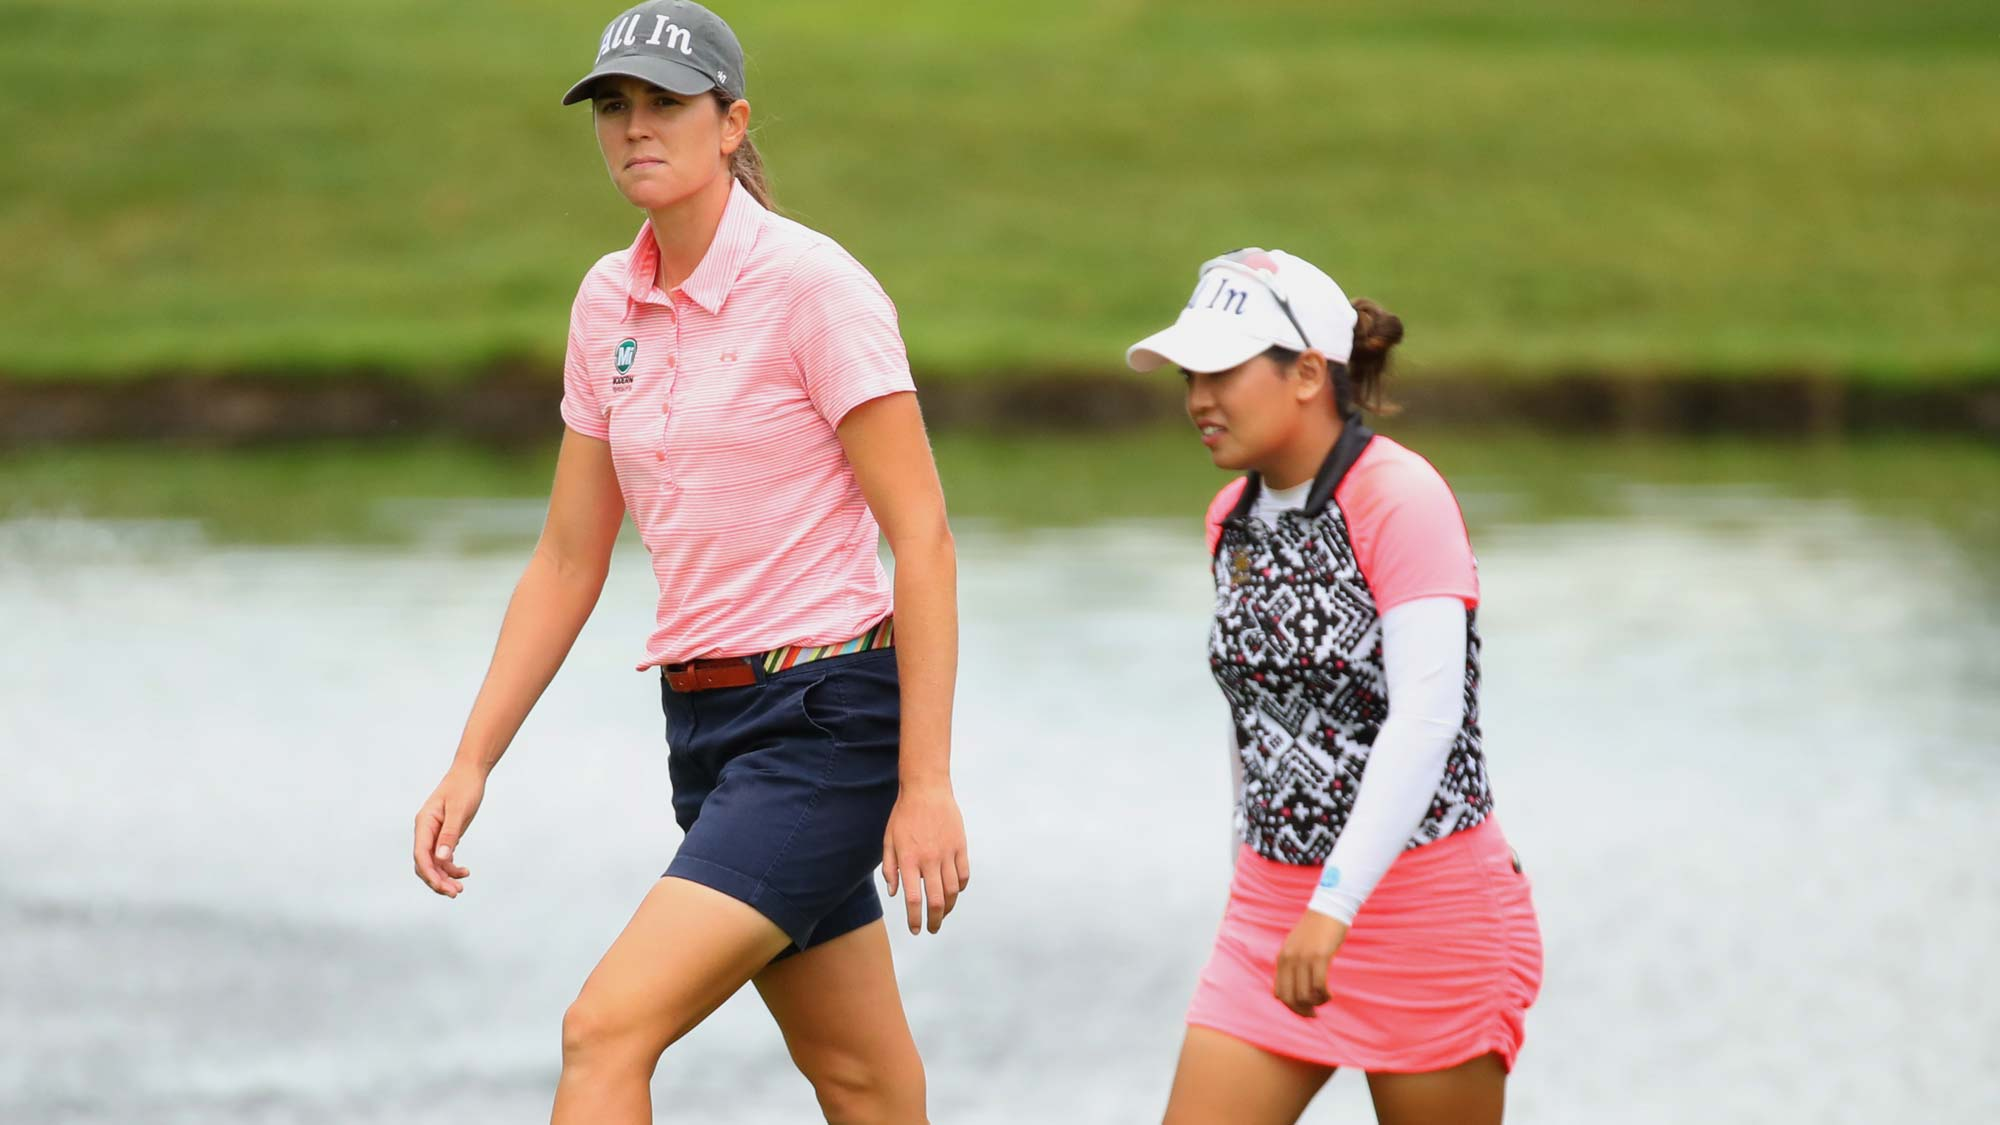 Teammates Cydney Clanton of the United States and Jasmine Suwannapura of Thailand walk to the fifth green during the final round of the Dow Great Lakes Bay Invitational